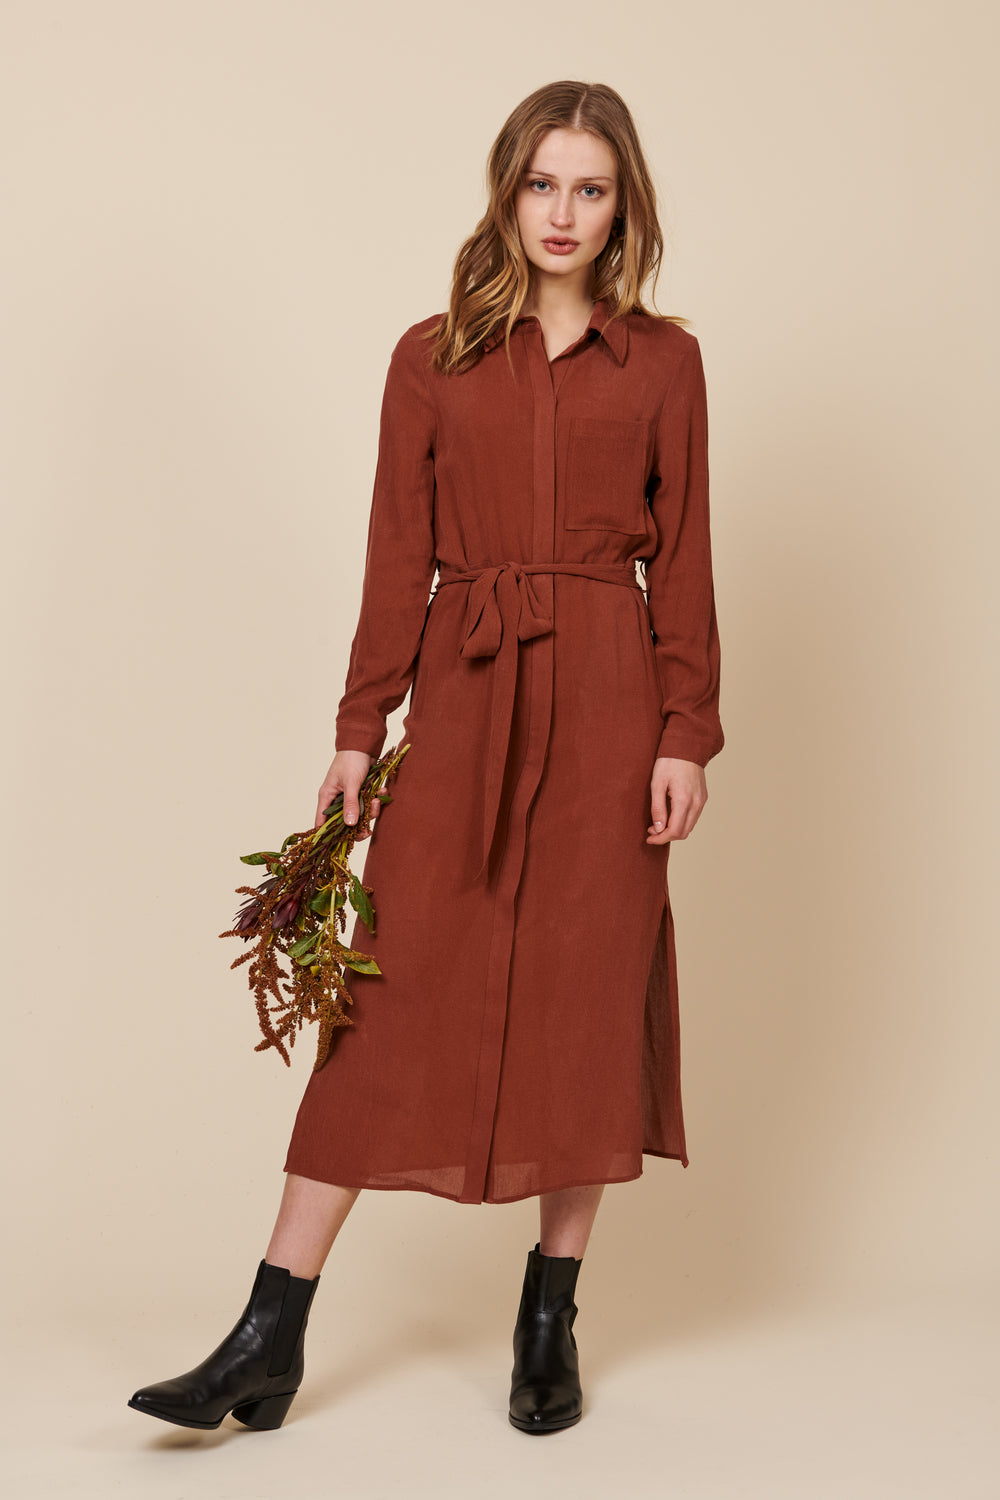 Zoe Dress in Sienna - Whimsy & Row